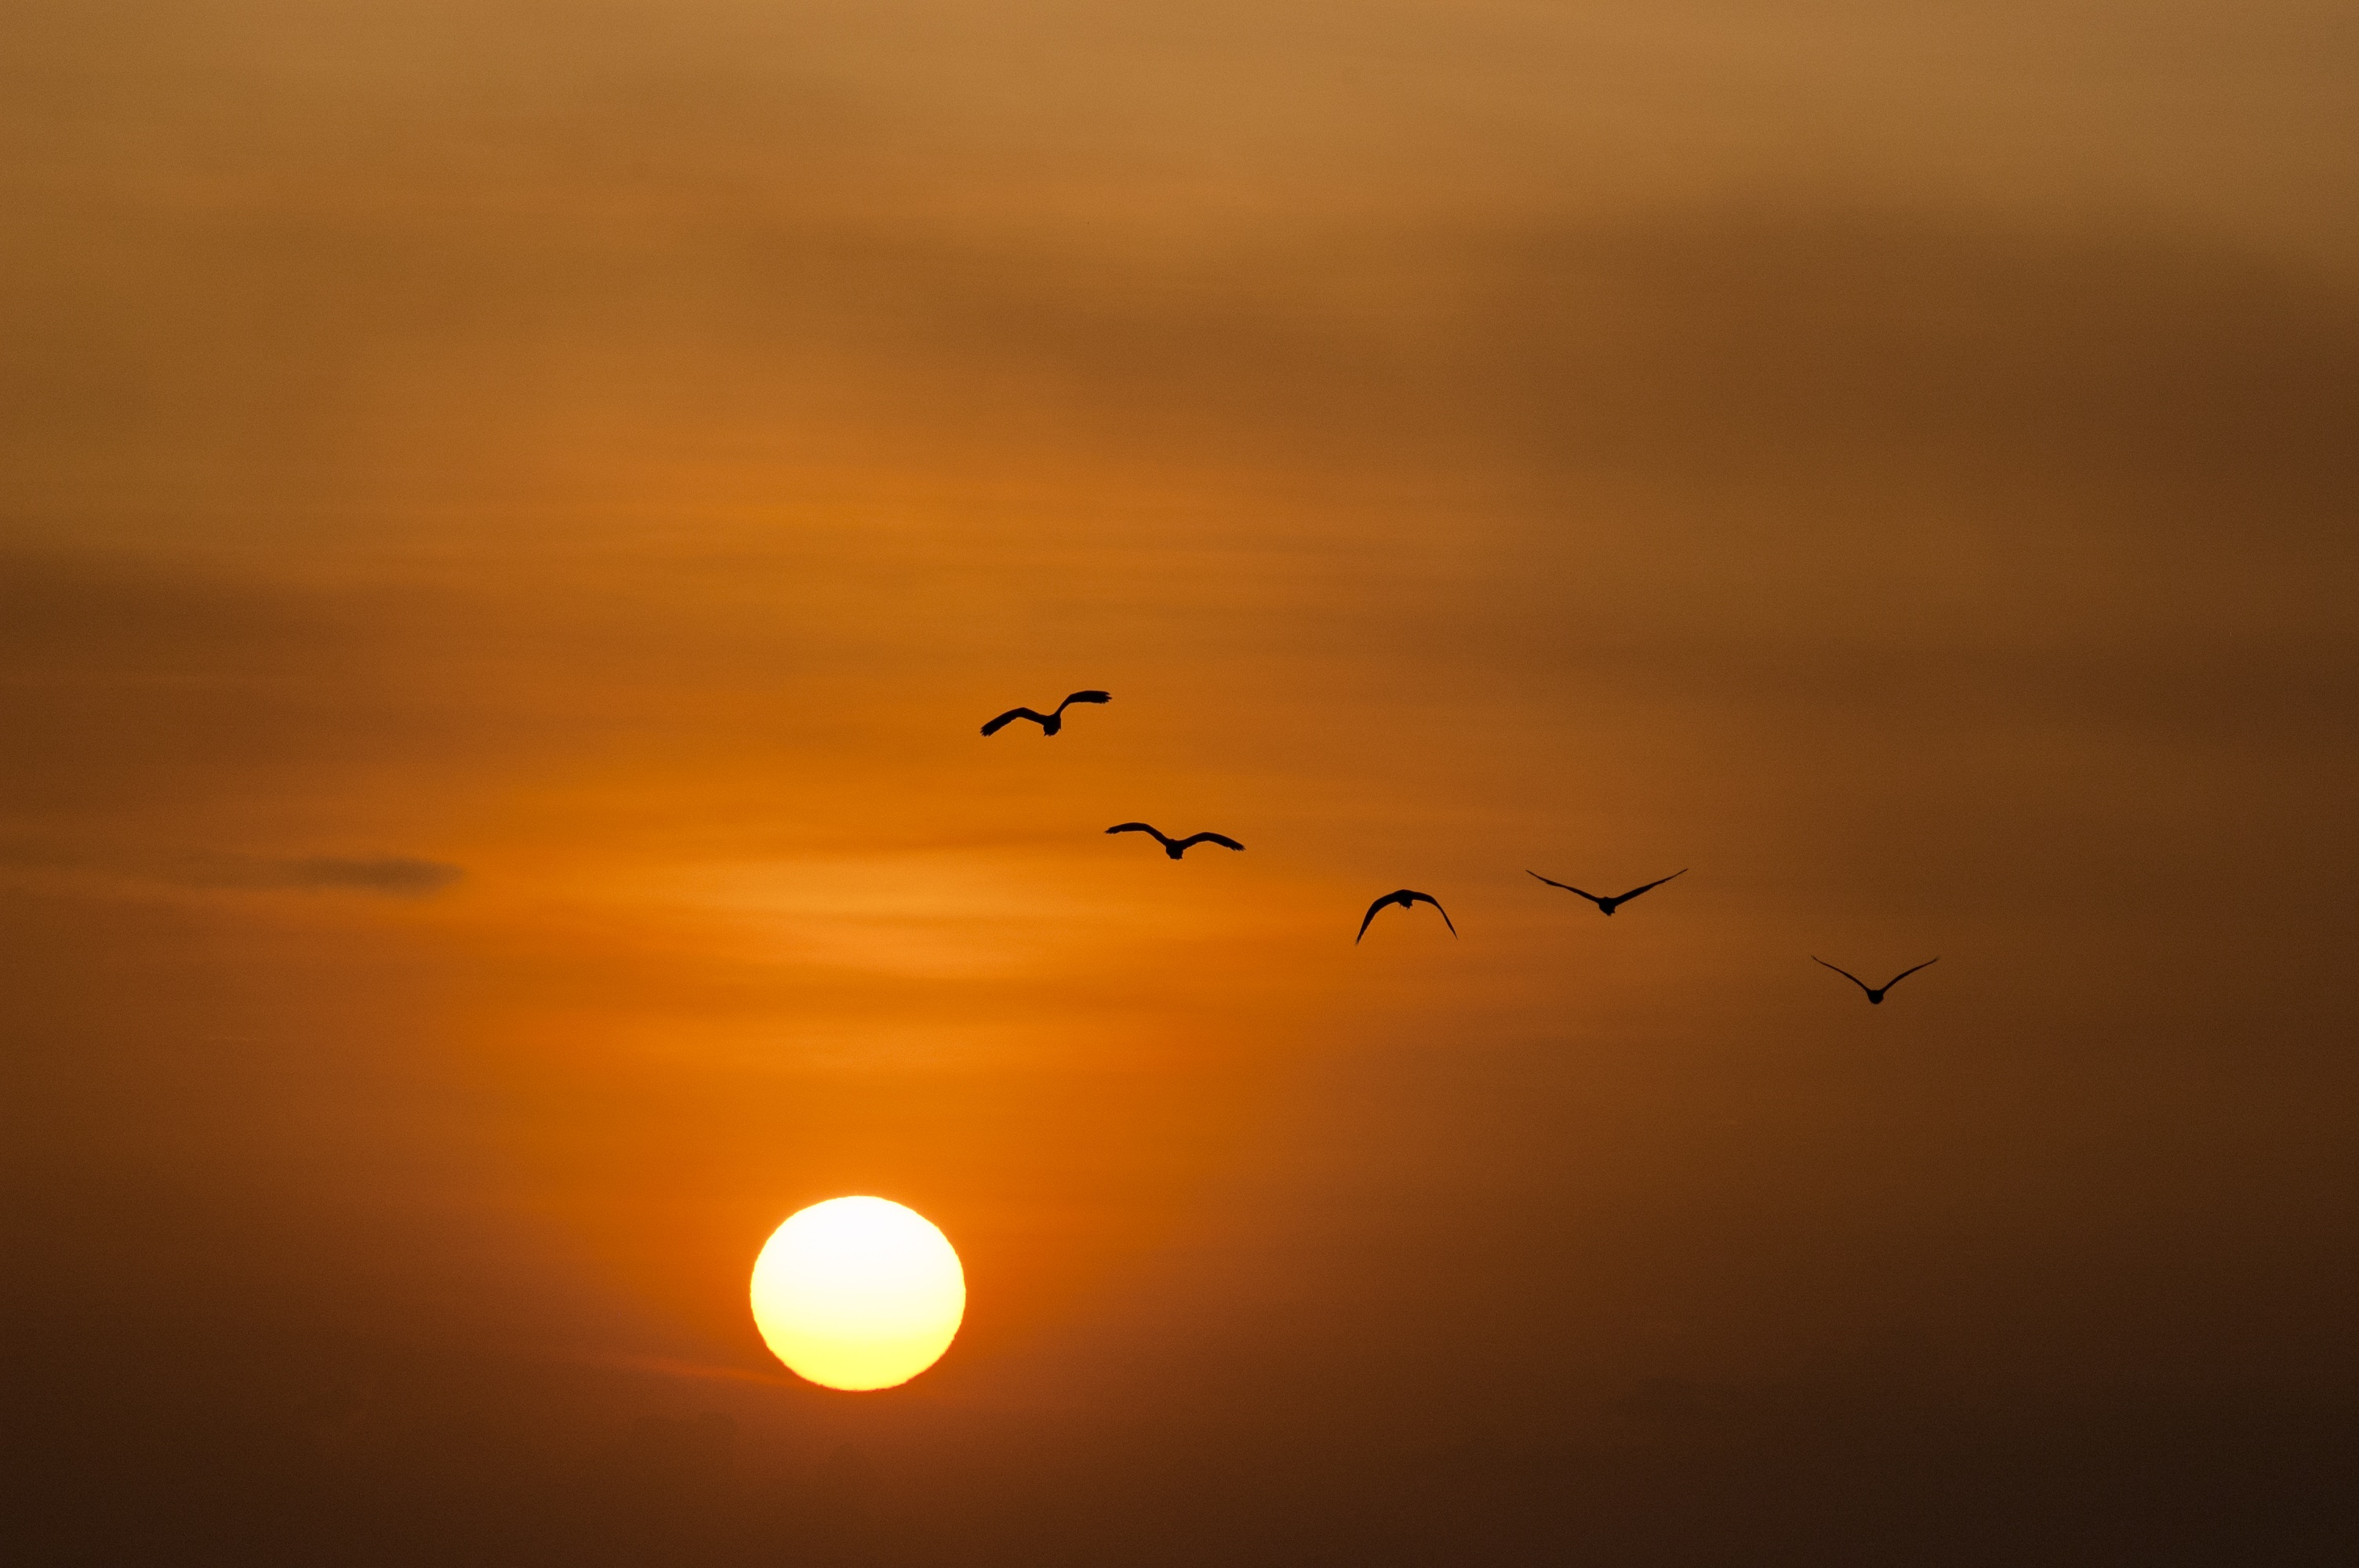 Samsung Galaxy A Hd Wallpaper Birds Silhouette During Sunset 183 Free Stock Photo